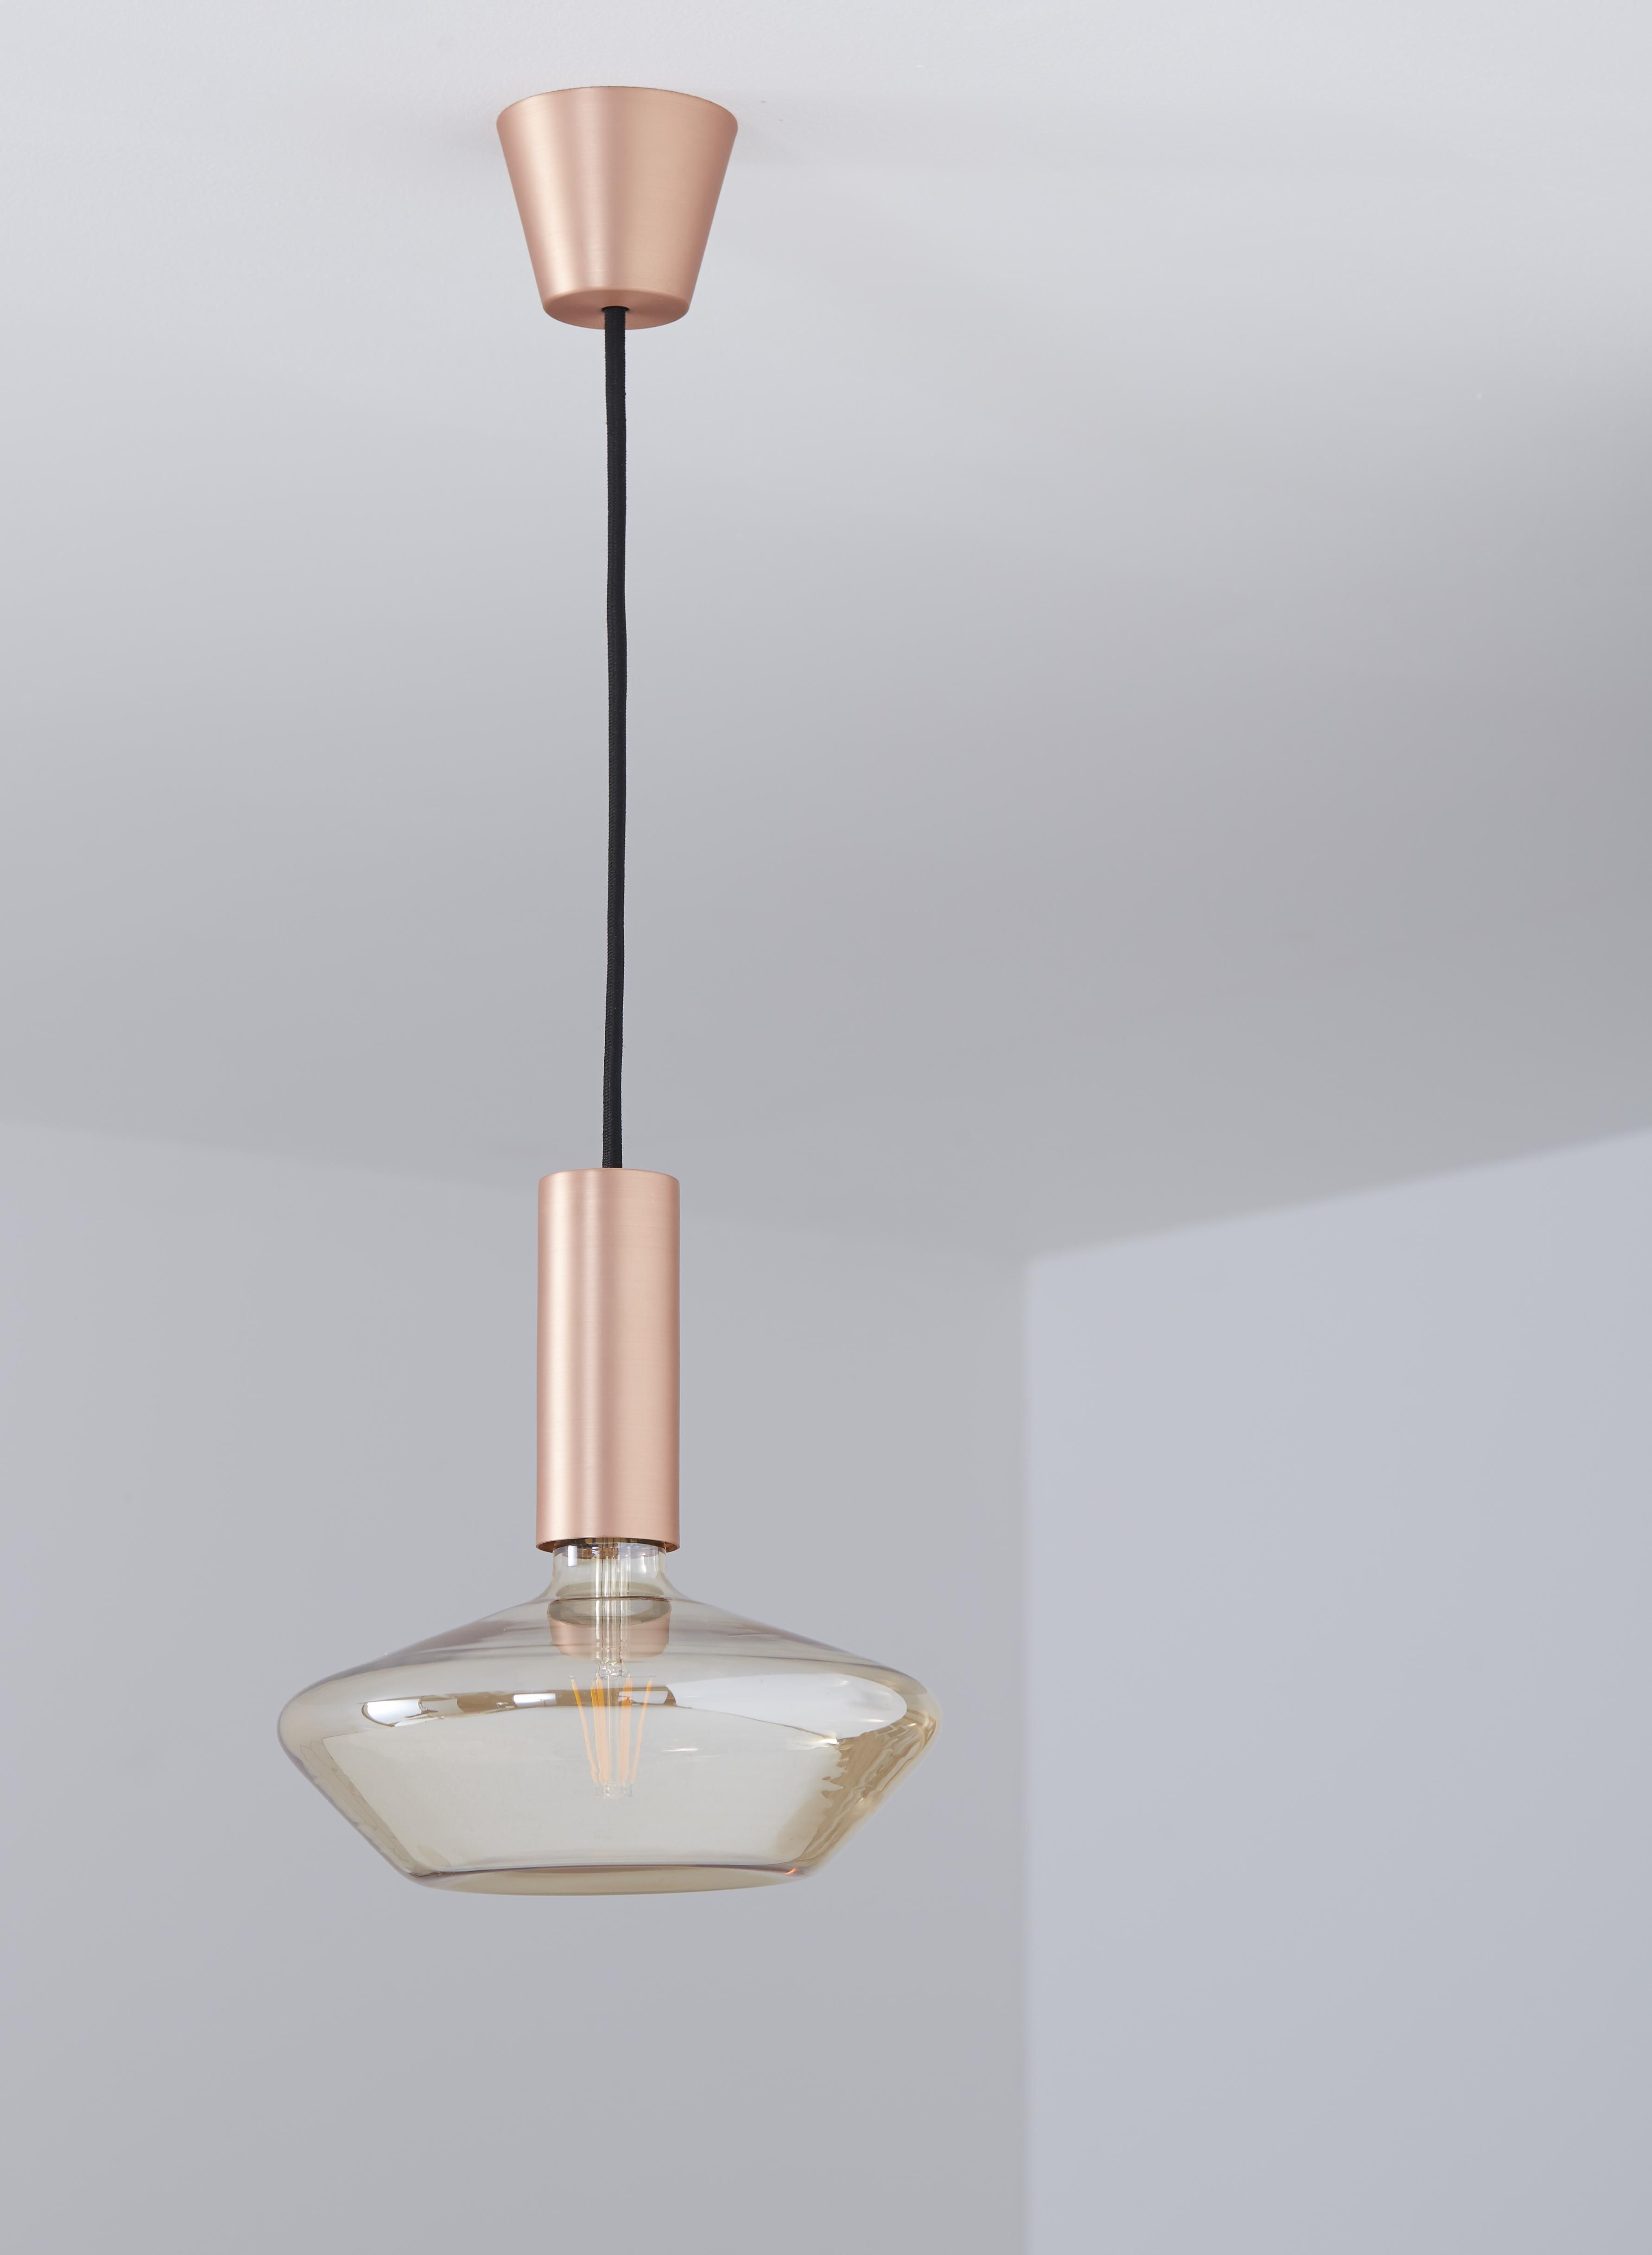 Sylcone Brushed Copper Effect Light Pendant with Hand Blown DC200 Bulb